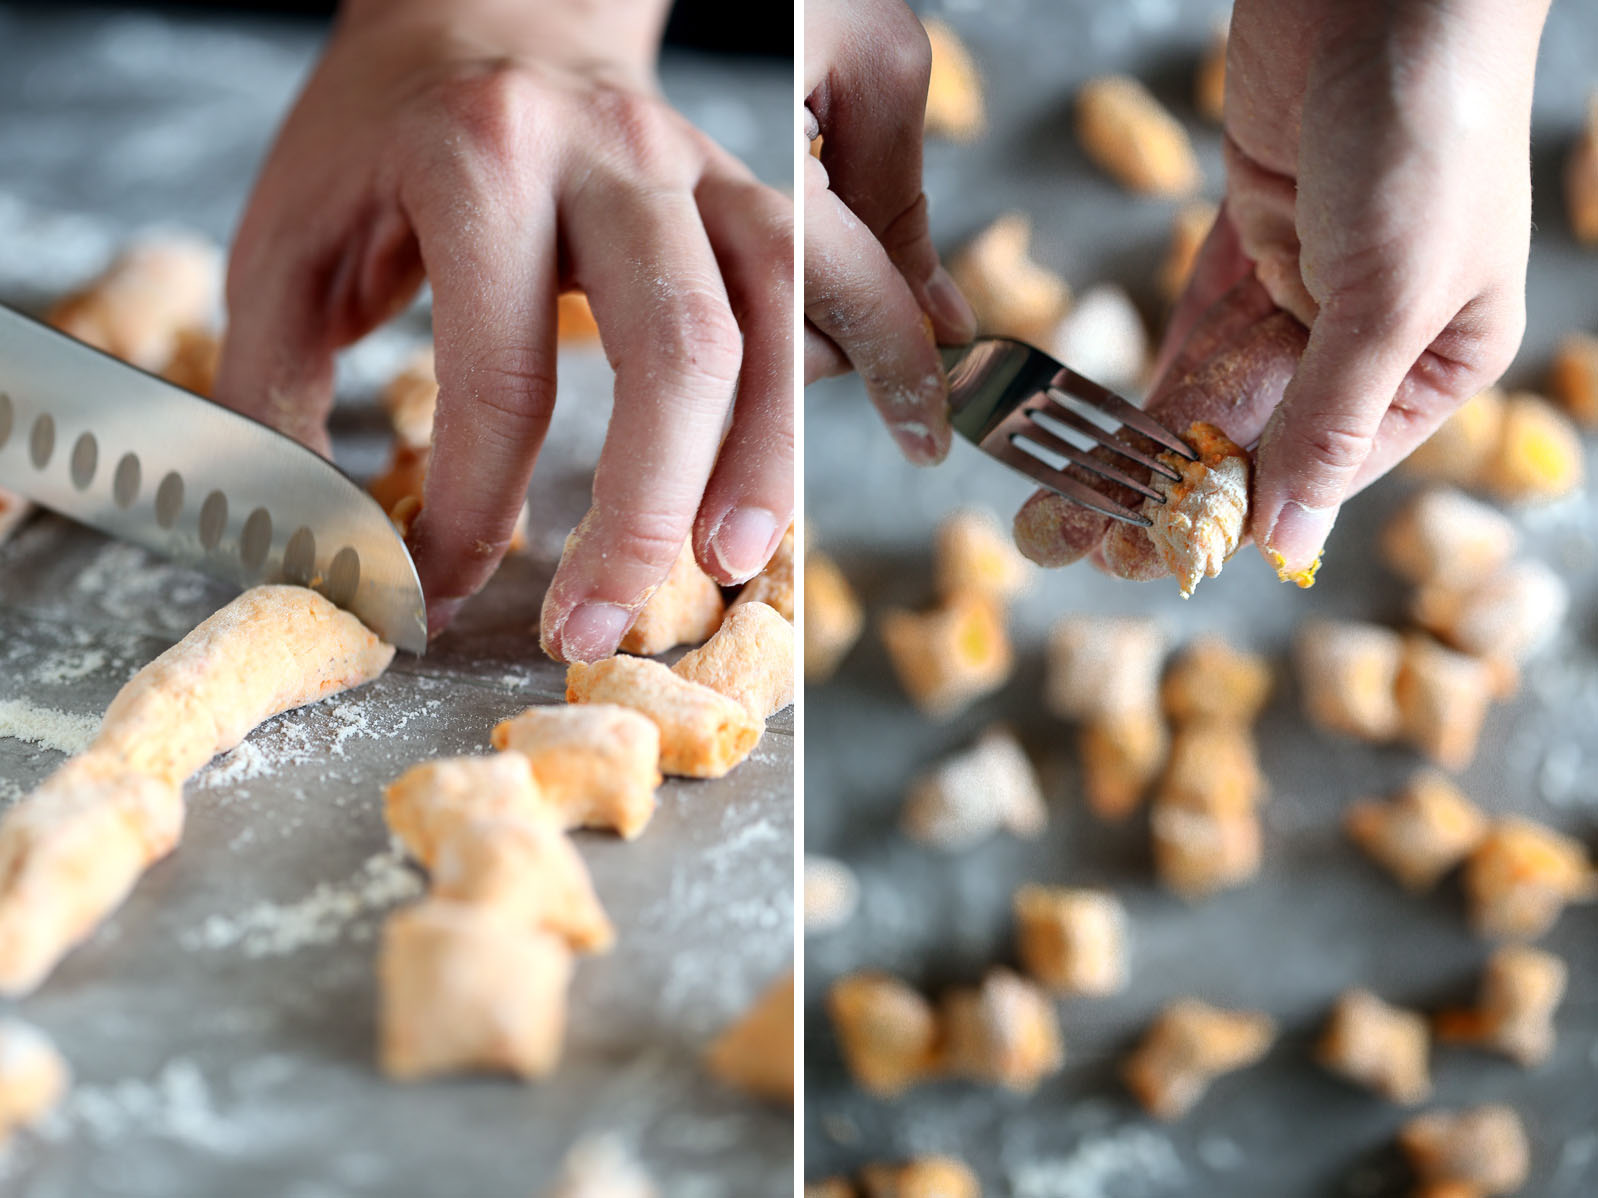 On the left, a photo cutting raw dough into gnocchi pieces with a sharp knife. On the right, shaping raw sweet potato gnocchi dough using a fork.